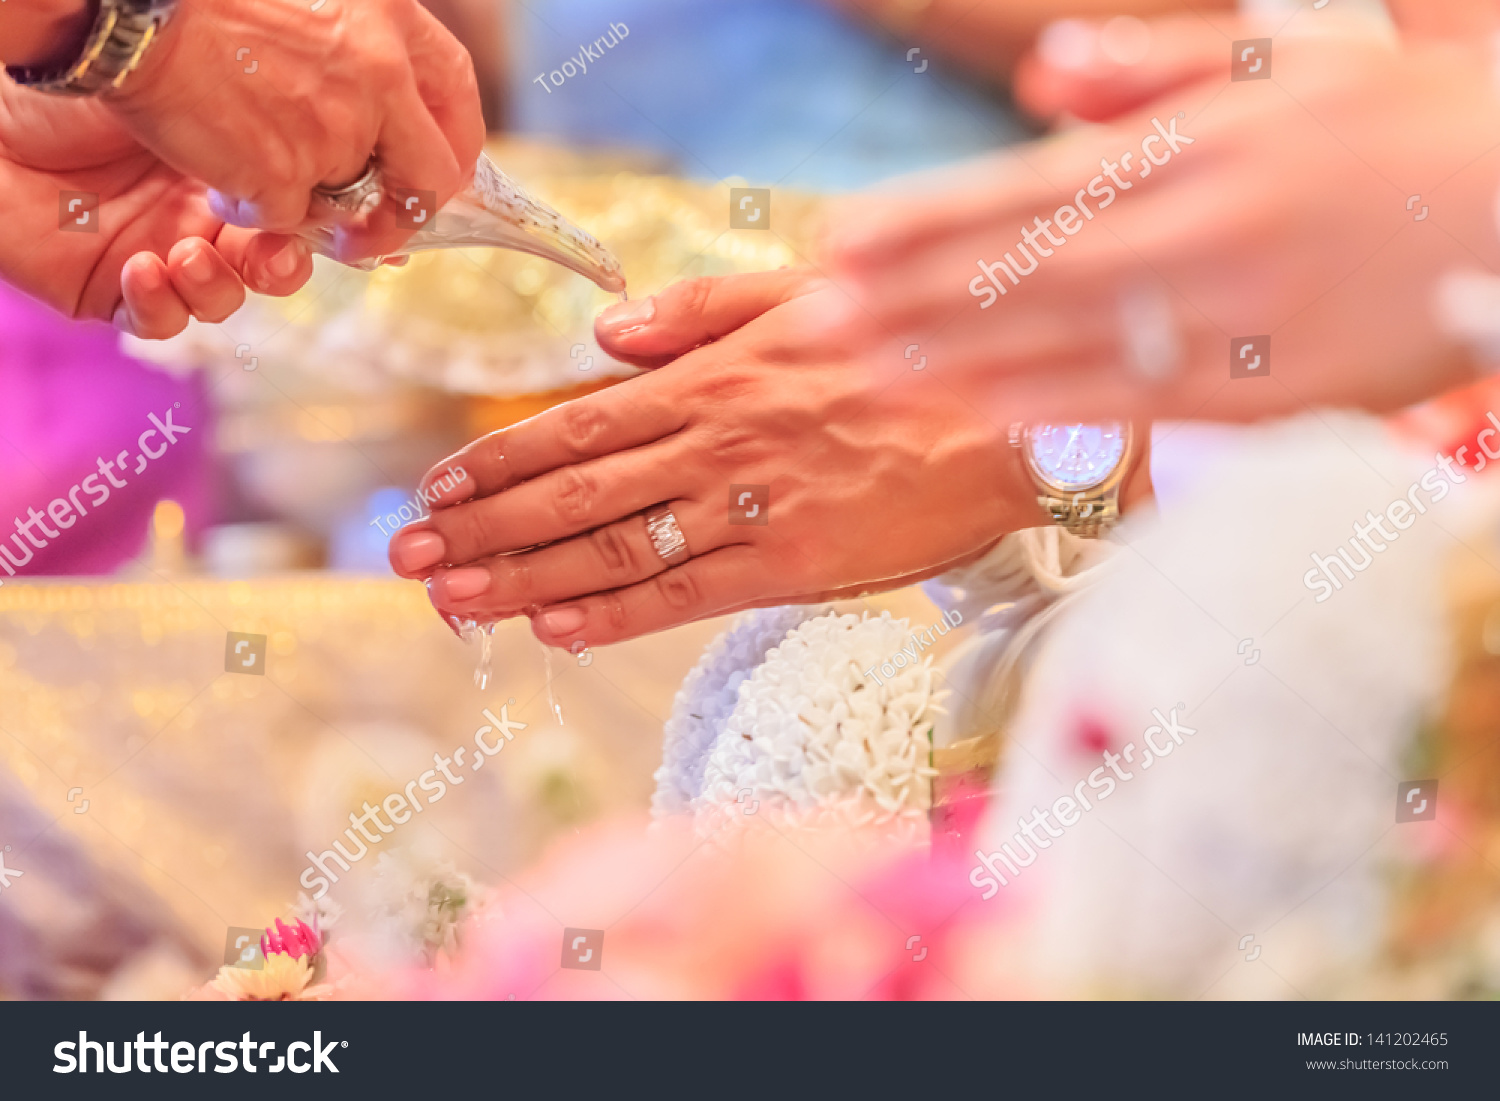 Hands Pouring Blessing Water Into GroomS Bands Thai Wedding Ceremony Stock Photo 141202465